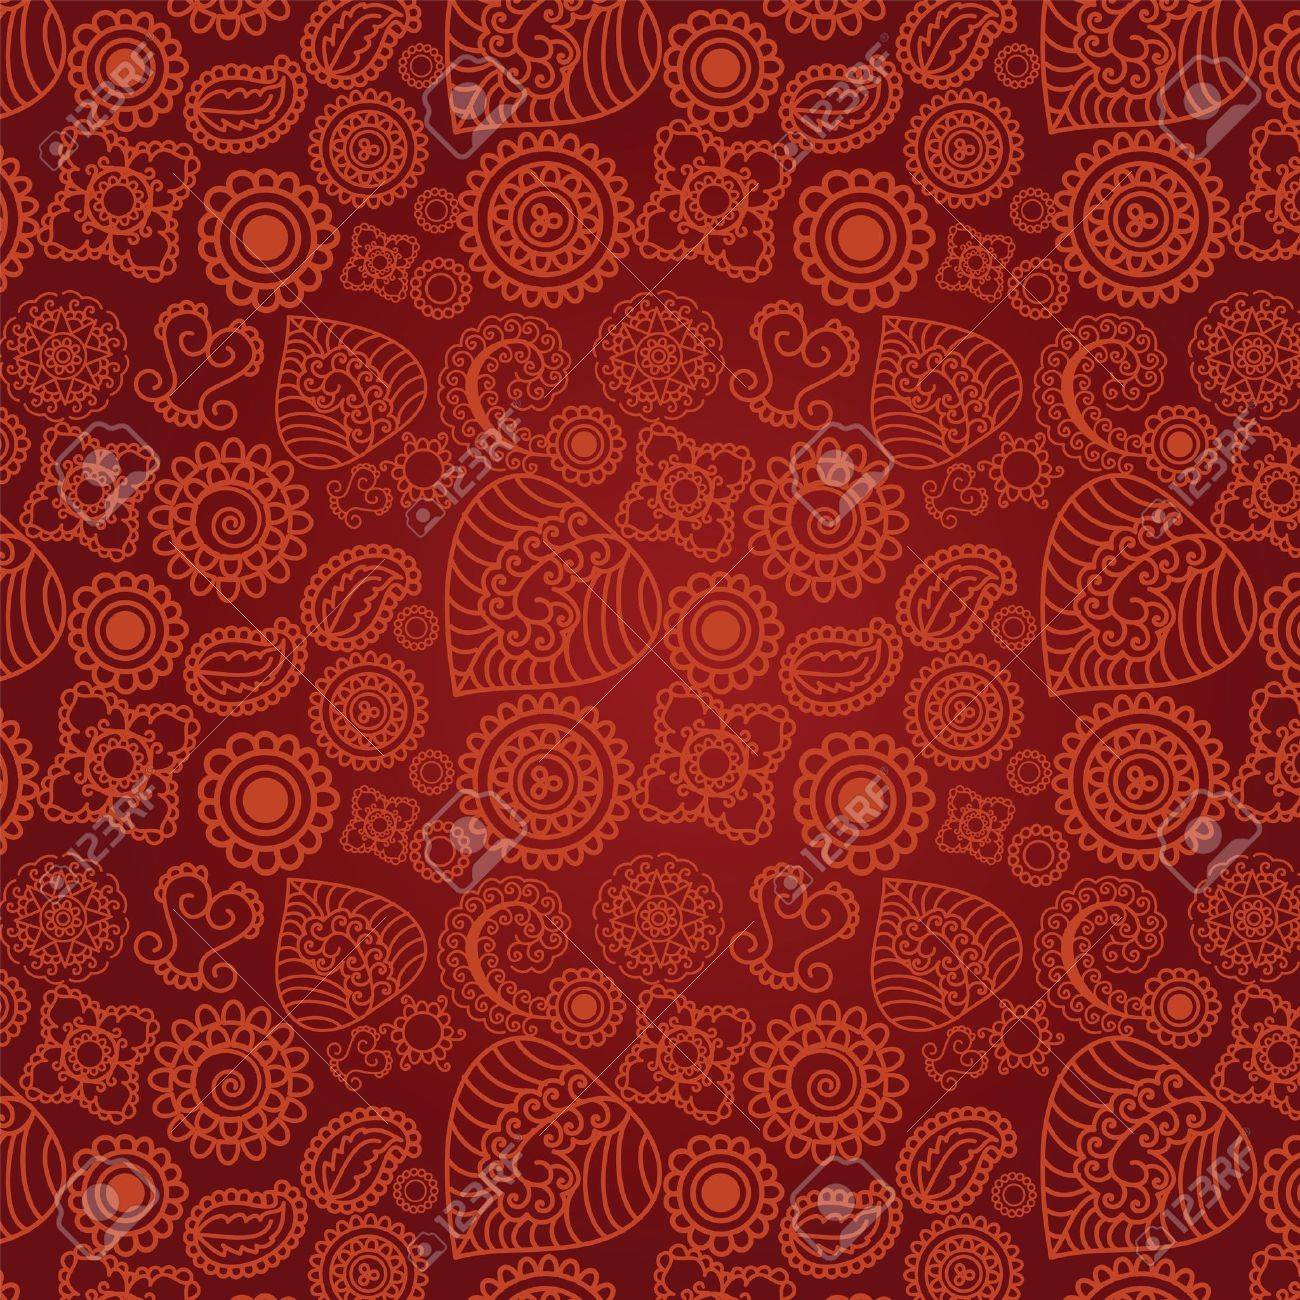 Seamless Henna Background Royalty Free Cliparts Vectors And Stock